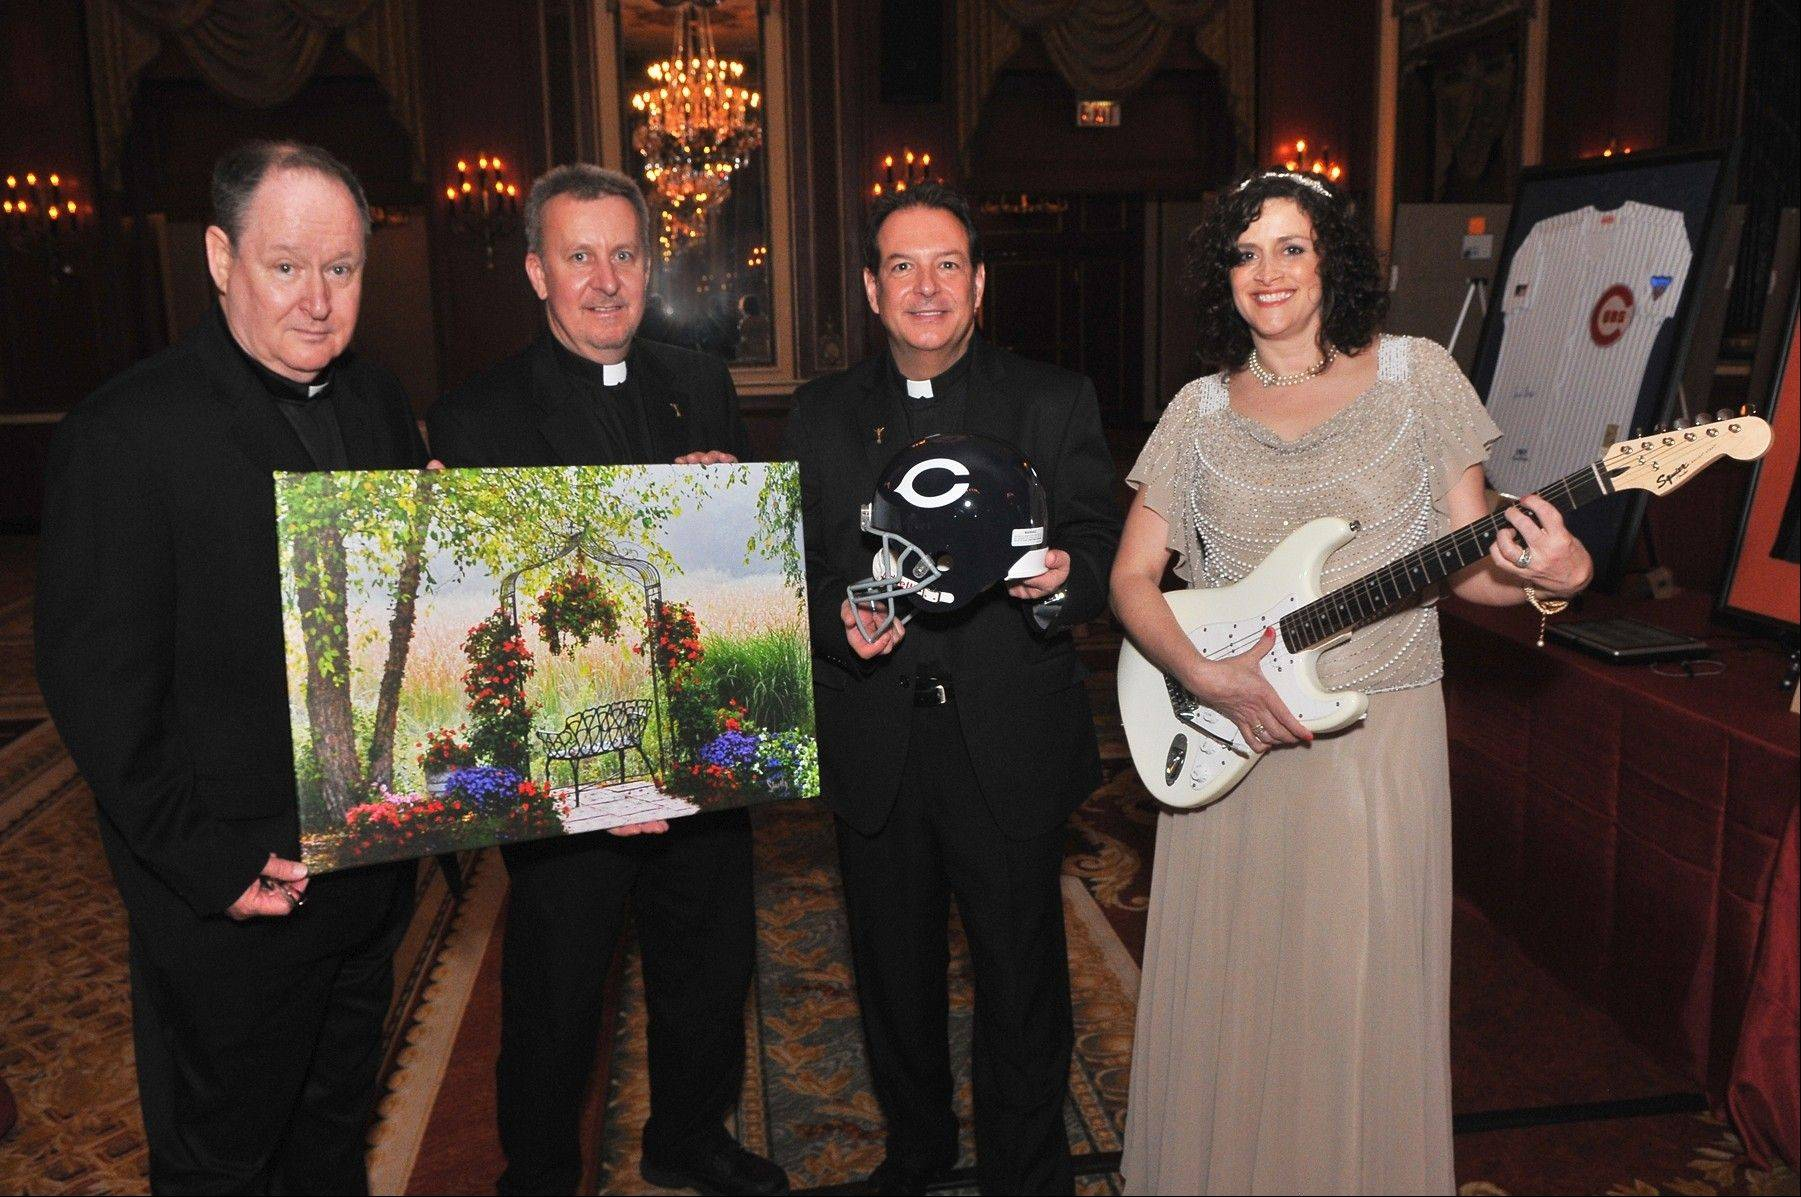 Pictured from left to right, Alexian Brothers Daniel McCormick (Provincial), Brother Paul Magner and Brother Tom Klein with Melanie Furlan, Vice President, Advancement, for Alexian Brothers Foundation, show off the silent auction items, including an autographed guitar by John Rzeznik of the Goo Goo Dolls.